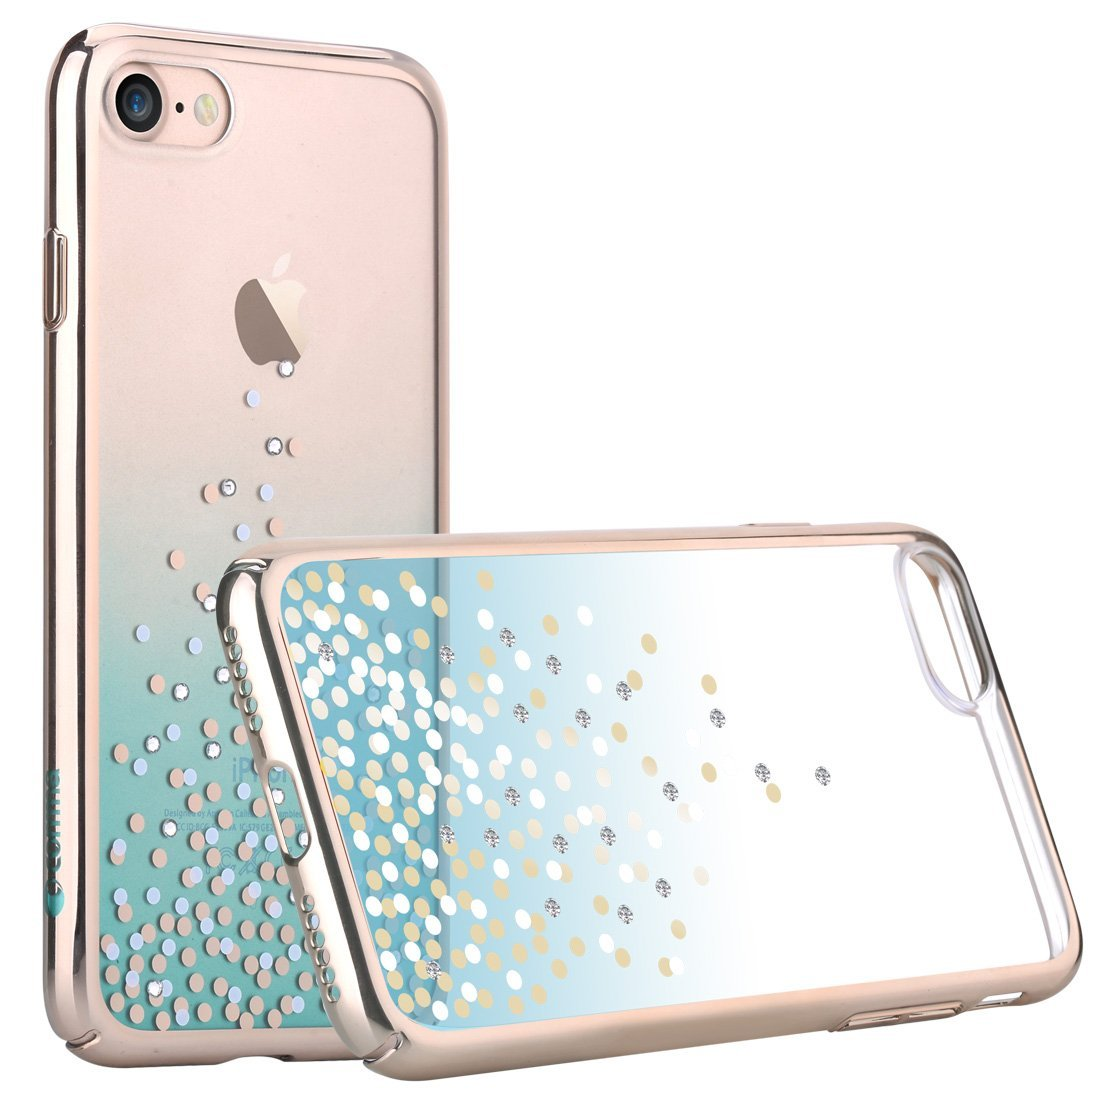 Comma-Unique-Polka-360-Series-Slim-Swarovski-Element-Case-for-iPhone-7-4-7-034-VS